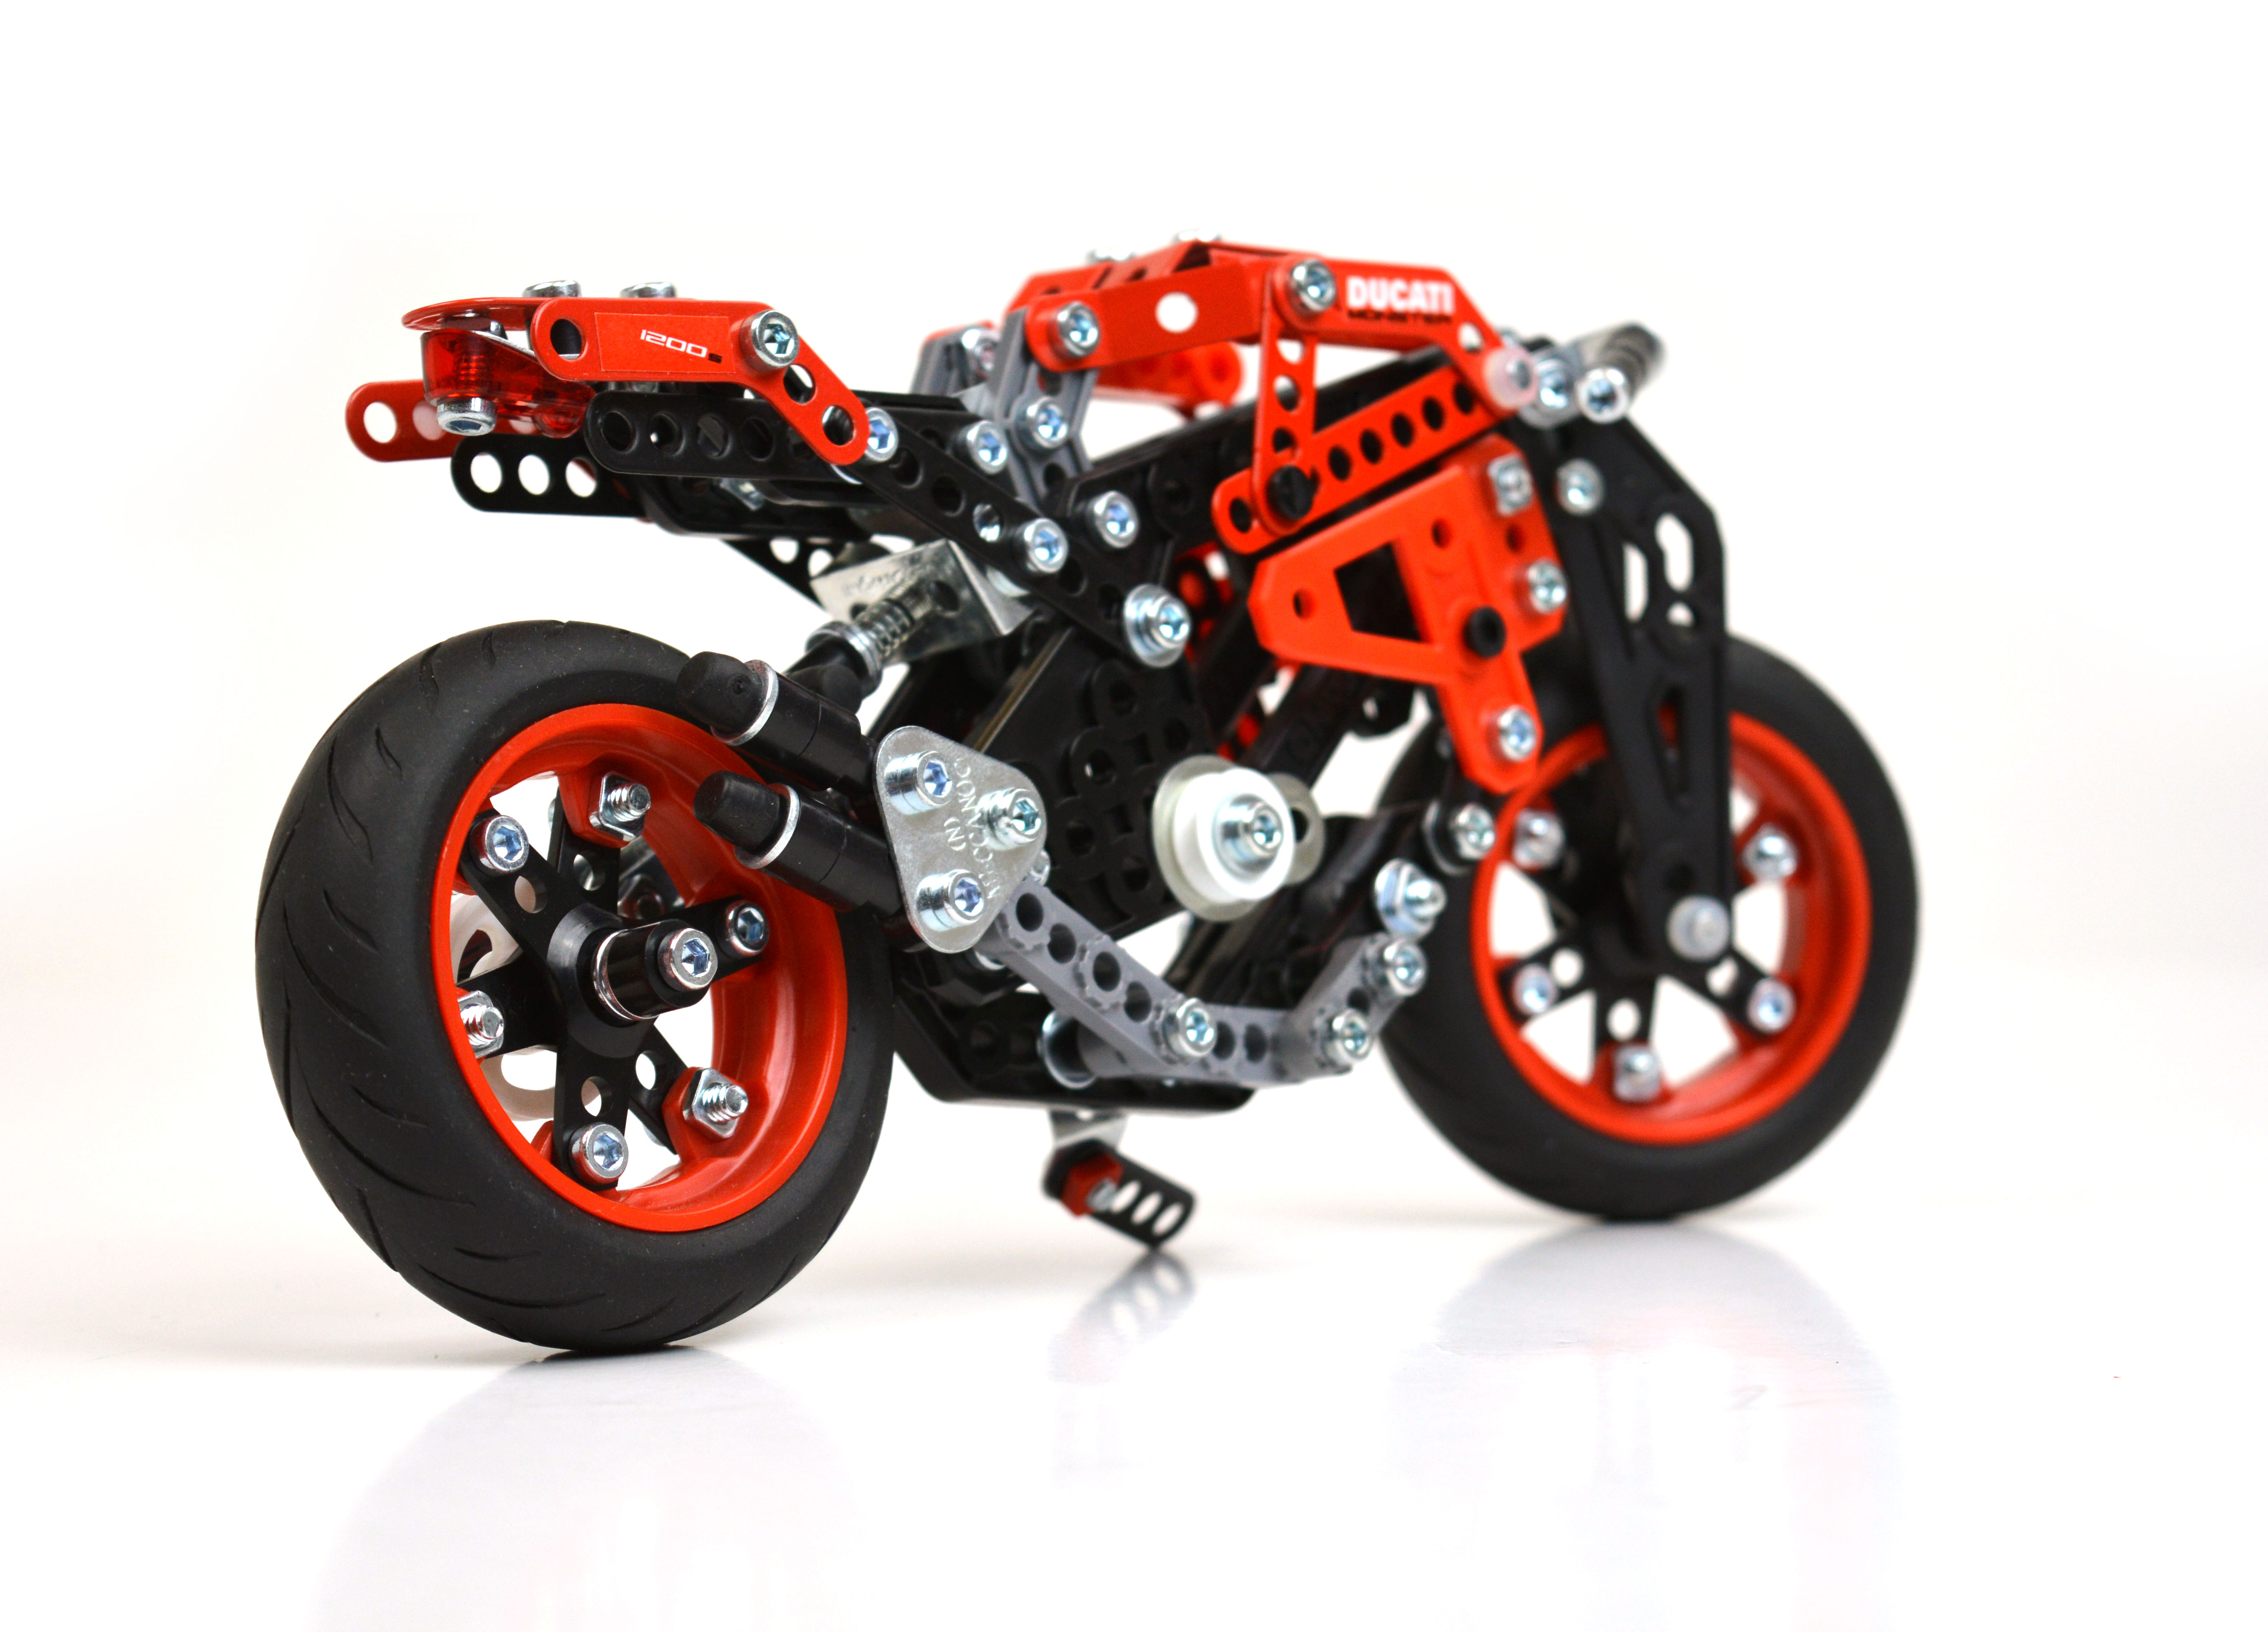 Ducati Monster 1200 S Build and Play